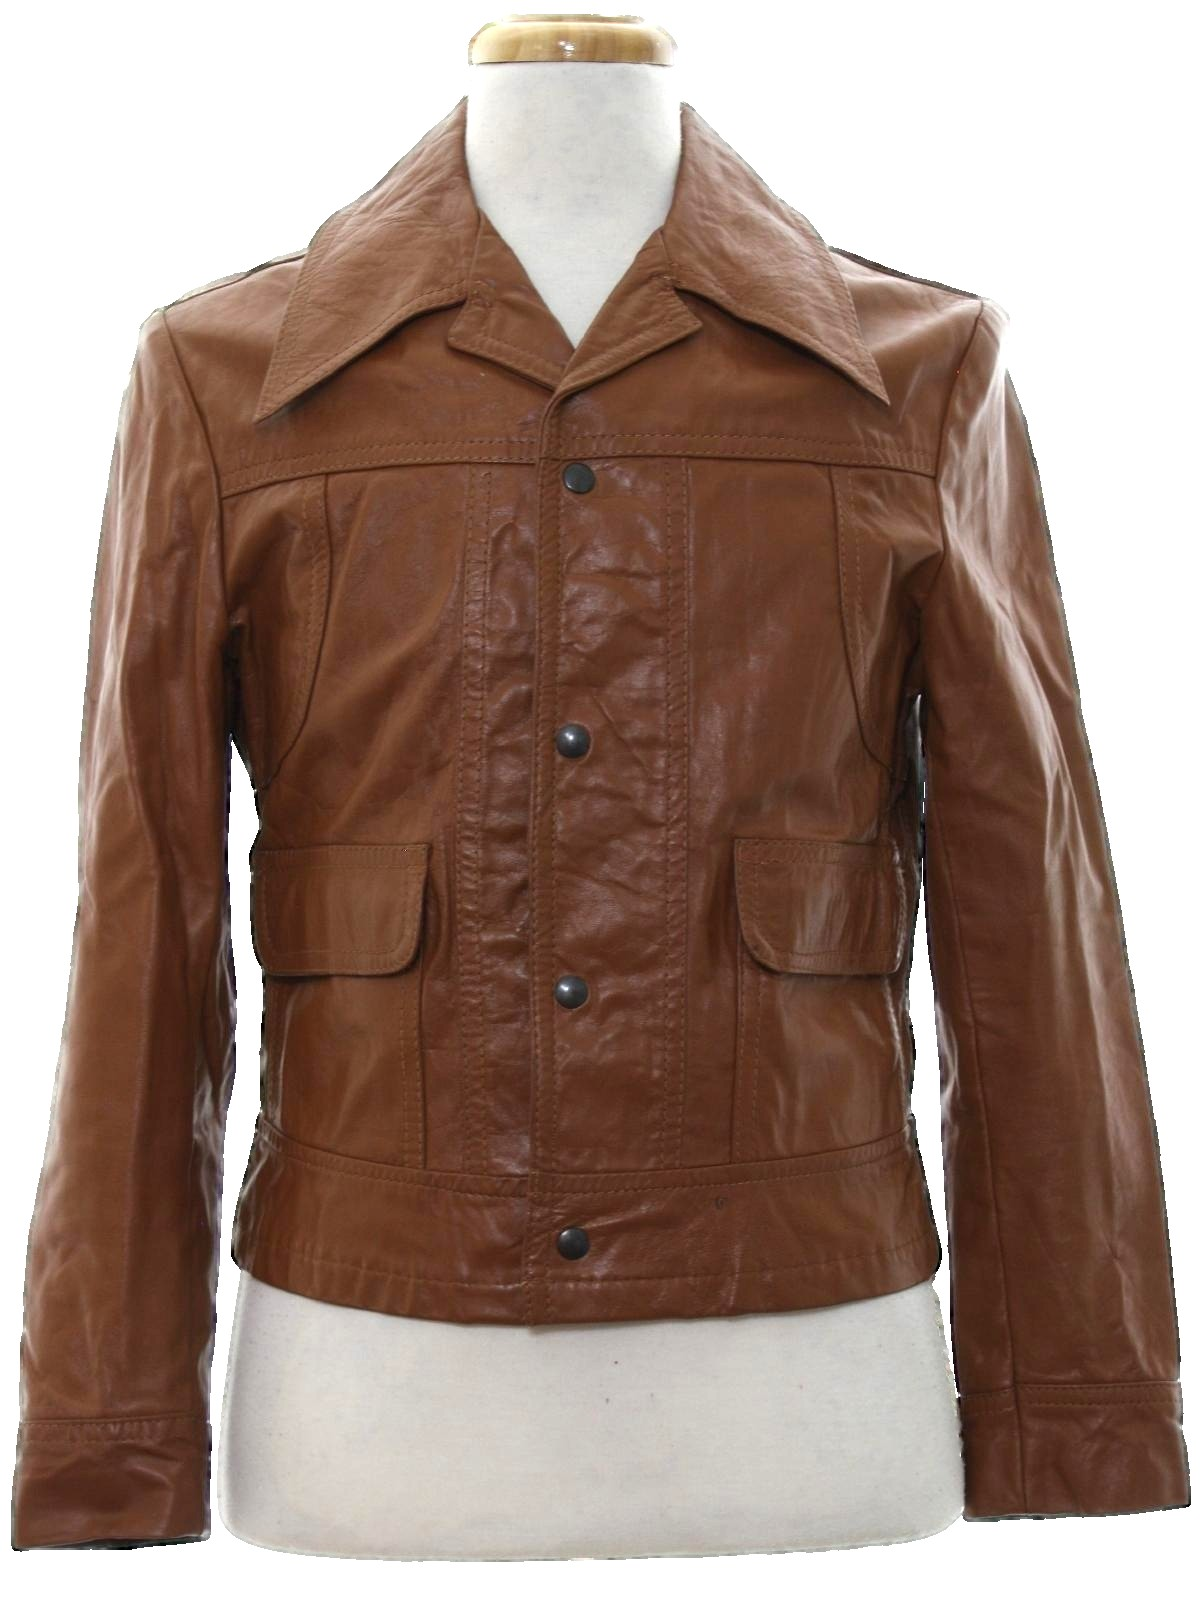 Wilsons Leather Wilsons Leather is a leading specialty retailer of quality accessories and outerwear. football-watch-live.ml